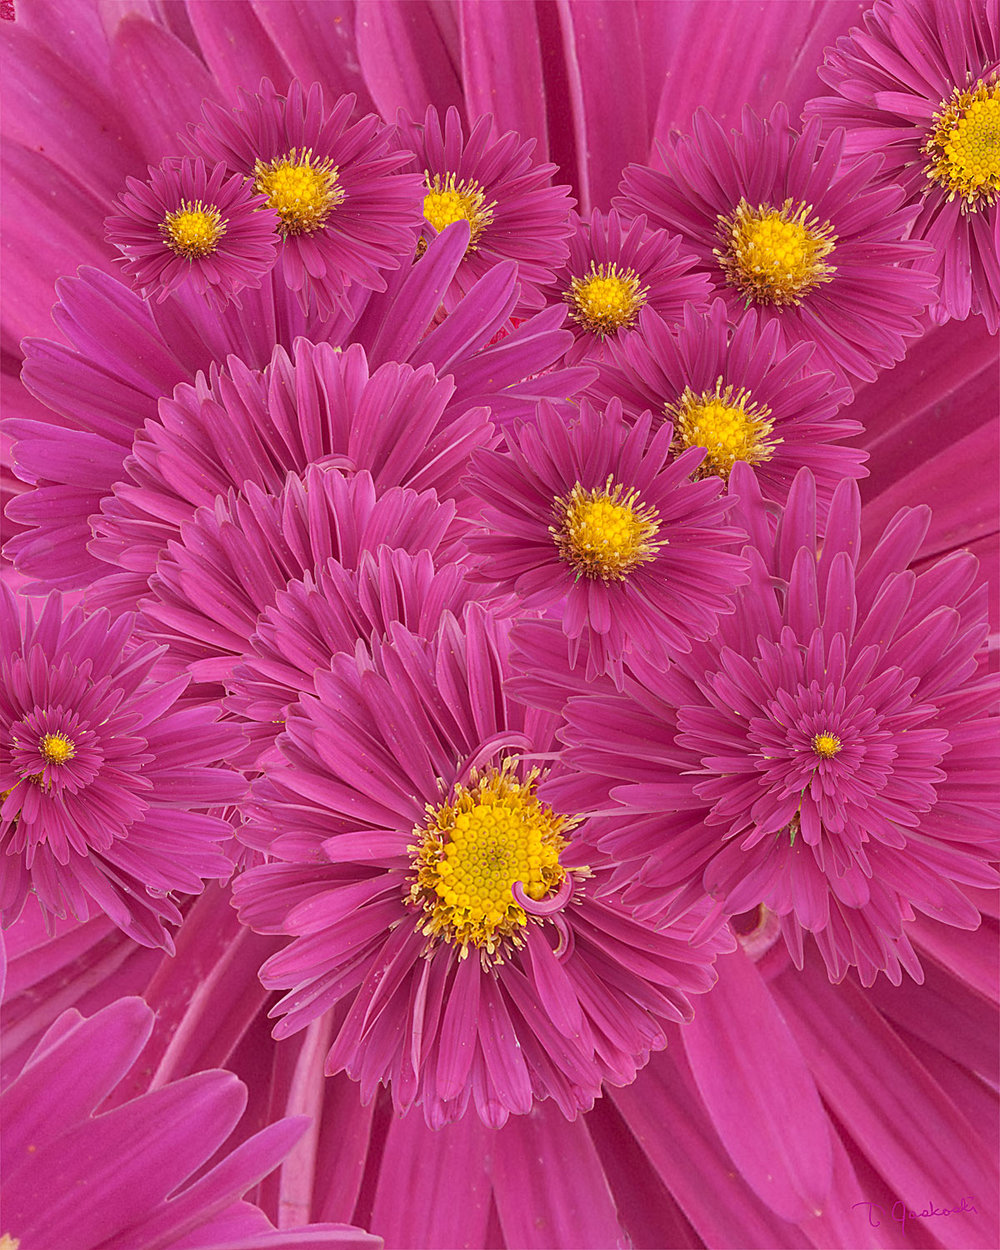 Aster Upon Aster Upon Aster